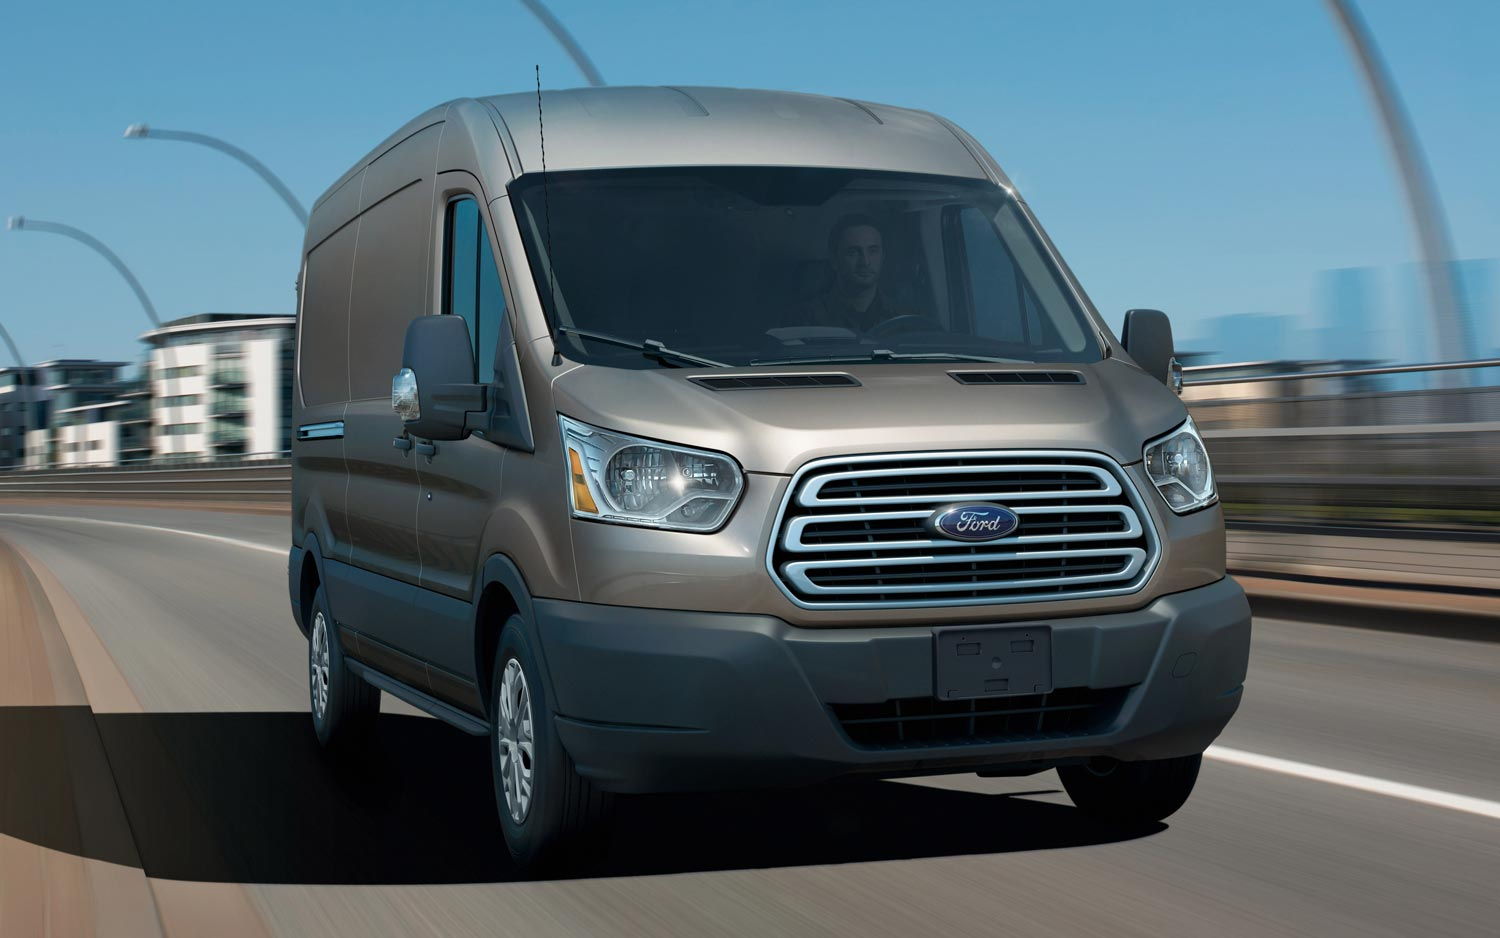 2014 Ford Transit Front Three Quarters View On Road1